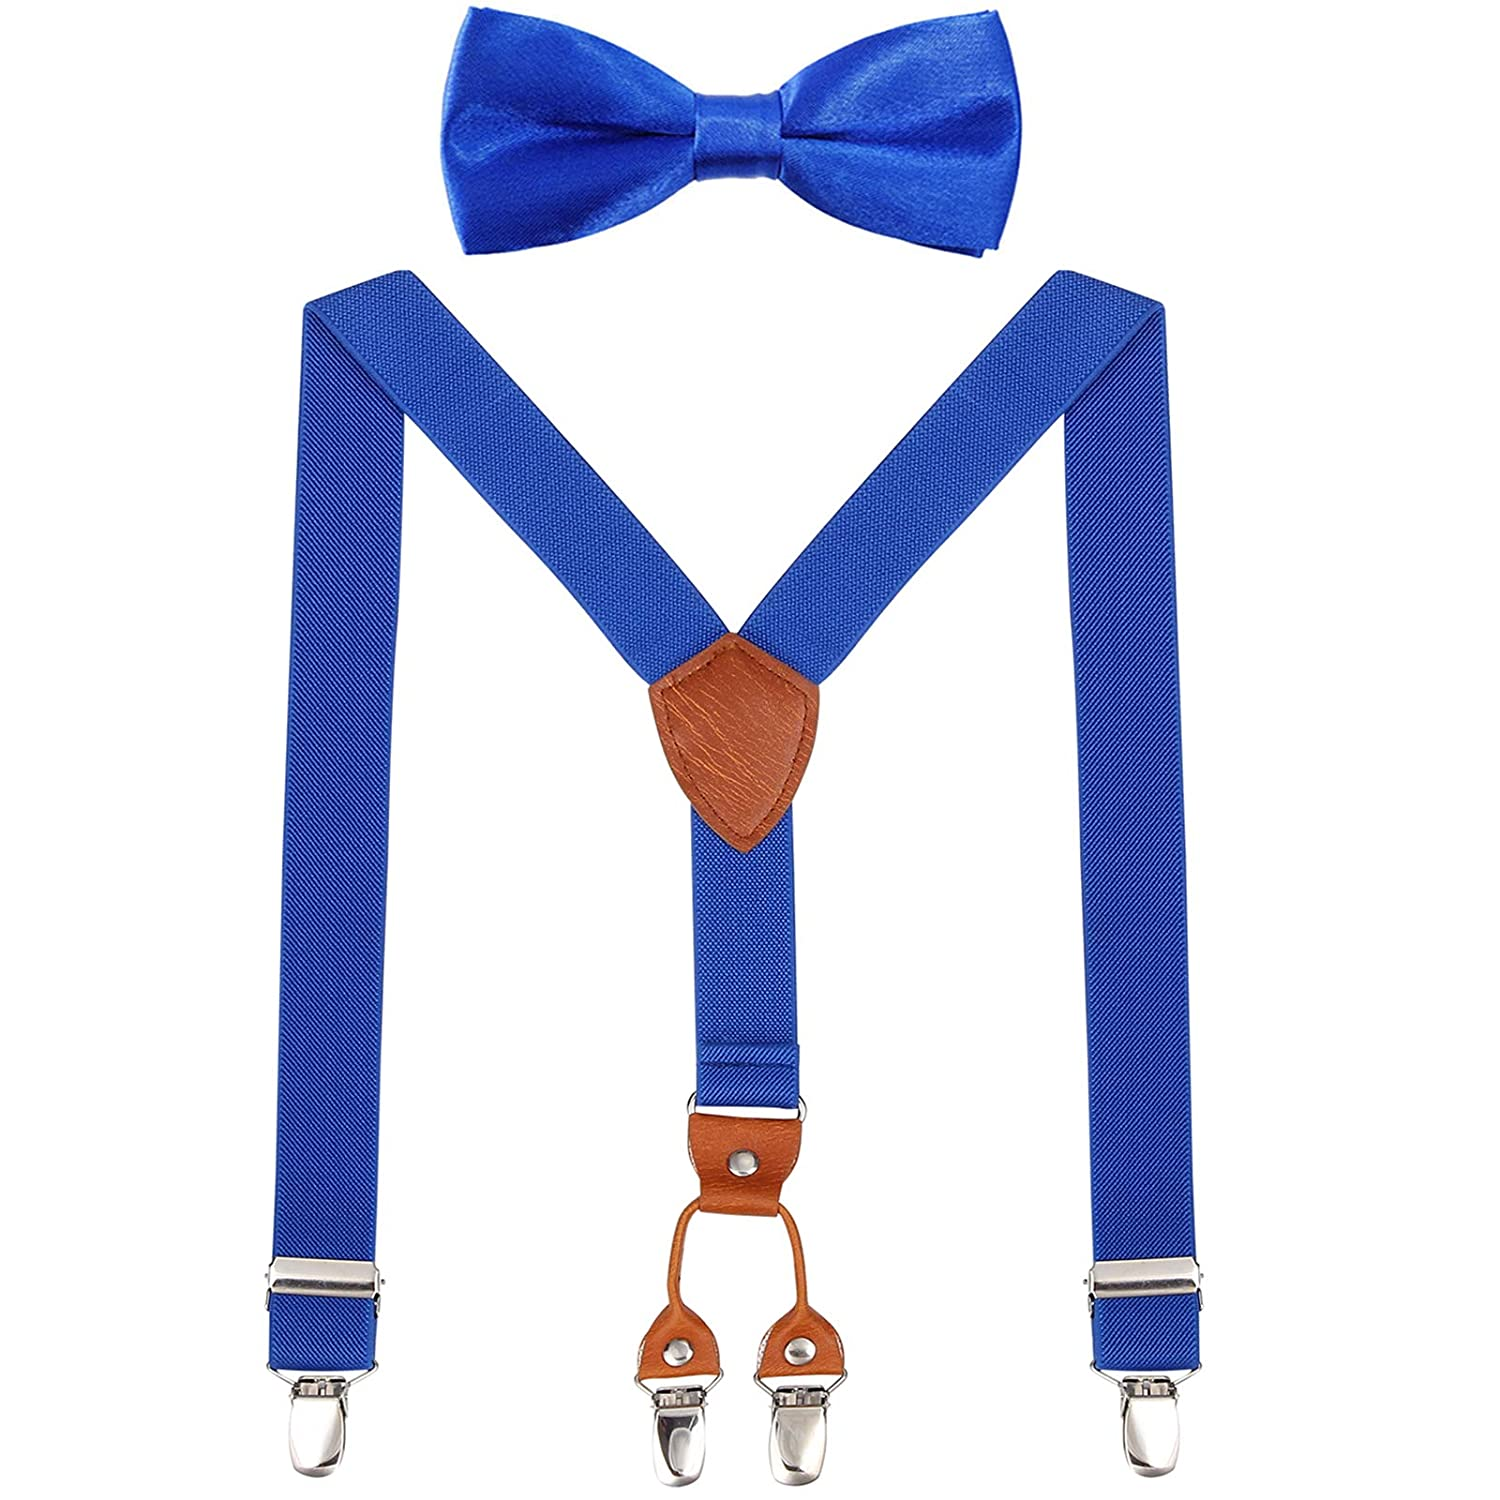 Children Braces Suspenders Bow Tie Y-Shaped Braces and Bowtie Set for Kid Boys Girls Leather Adjustable Elastic Suspenders with 4 Clips